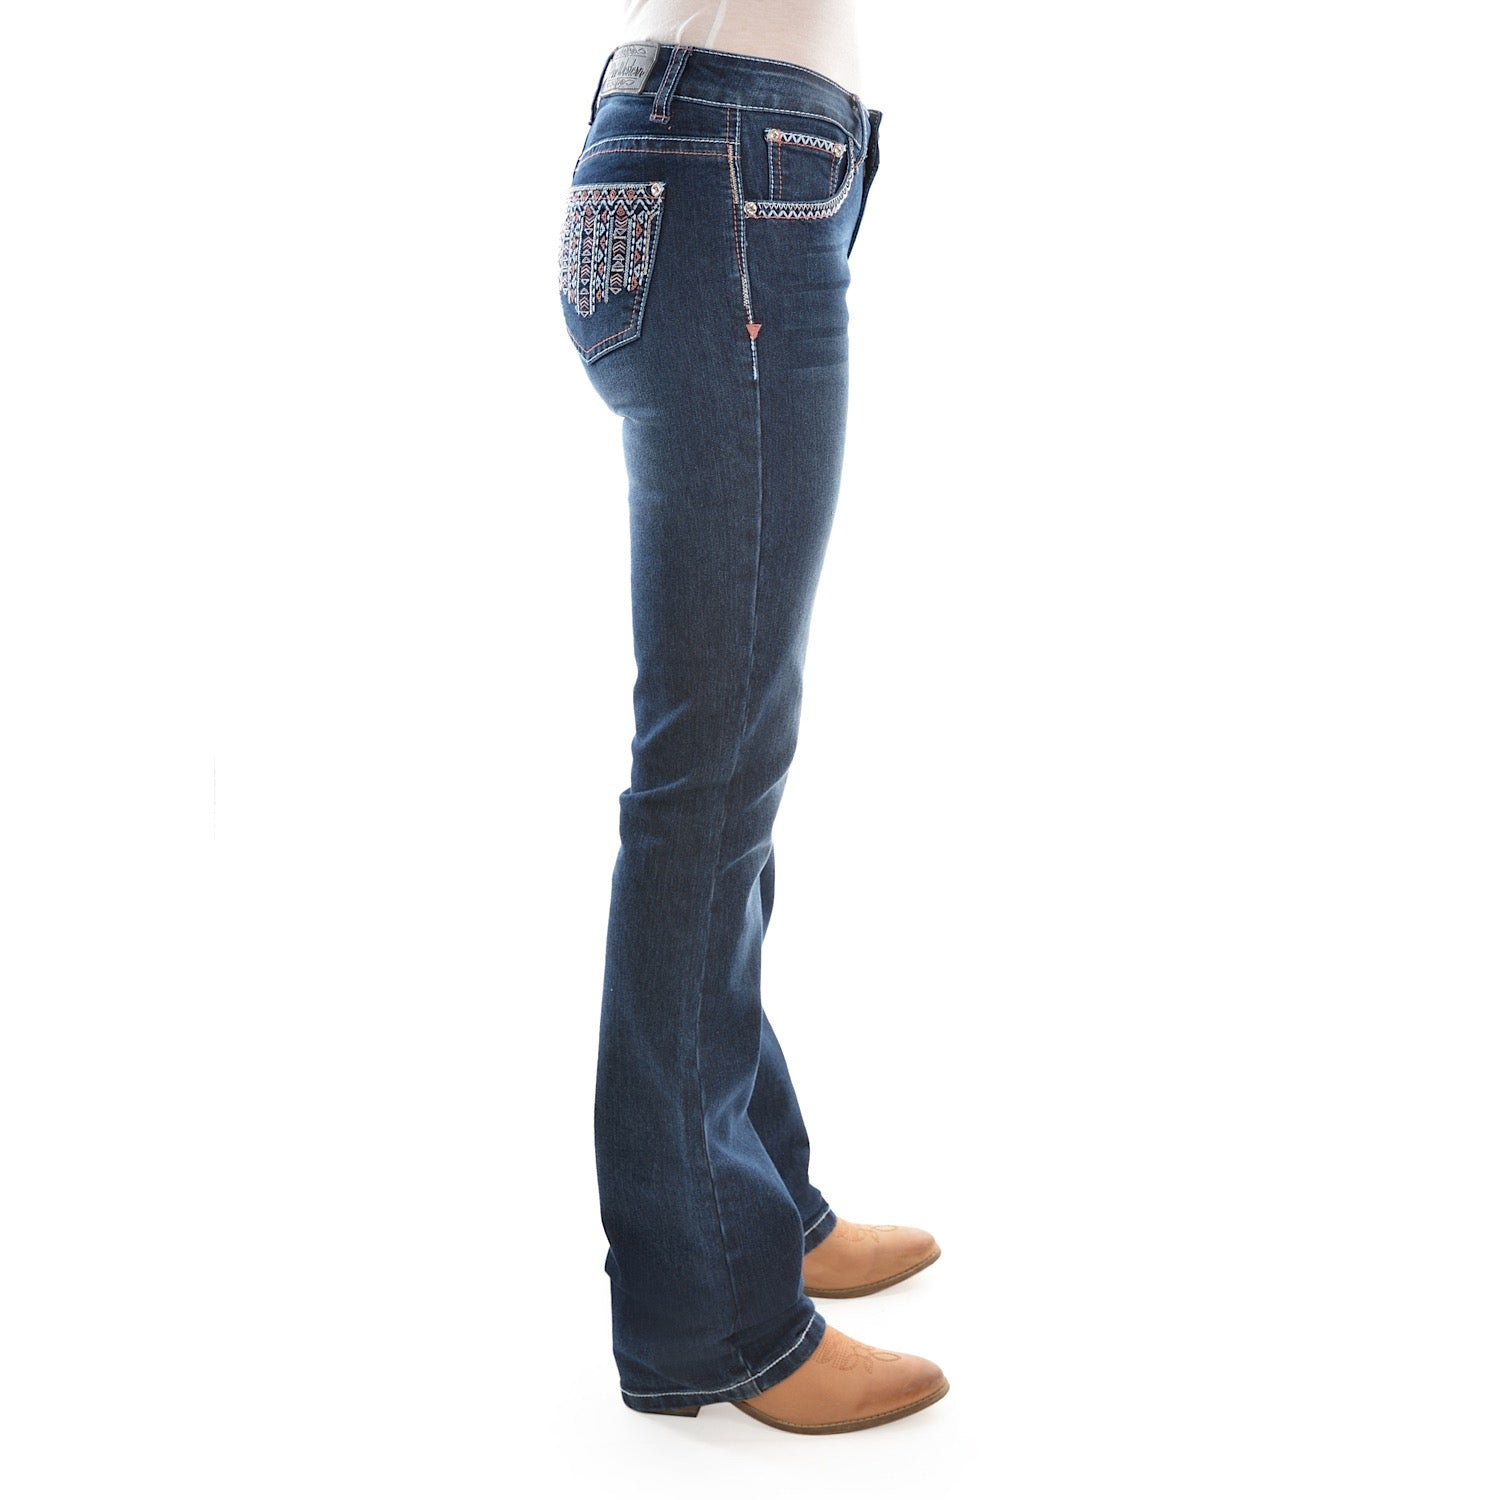 Buy Pure Western Womens Angie Relaxed Rider Jean 36 Leg Midnight The Stable Door